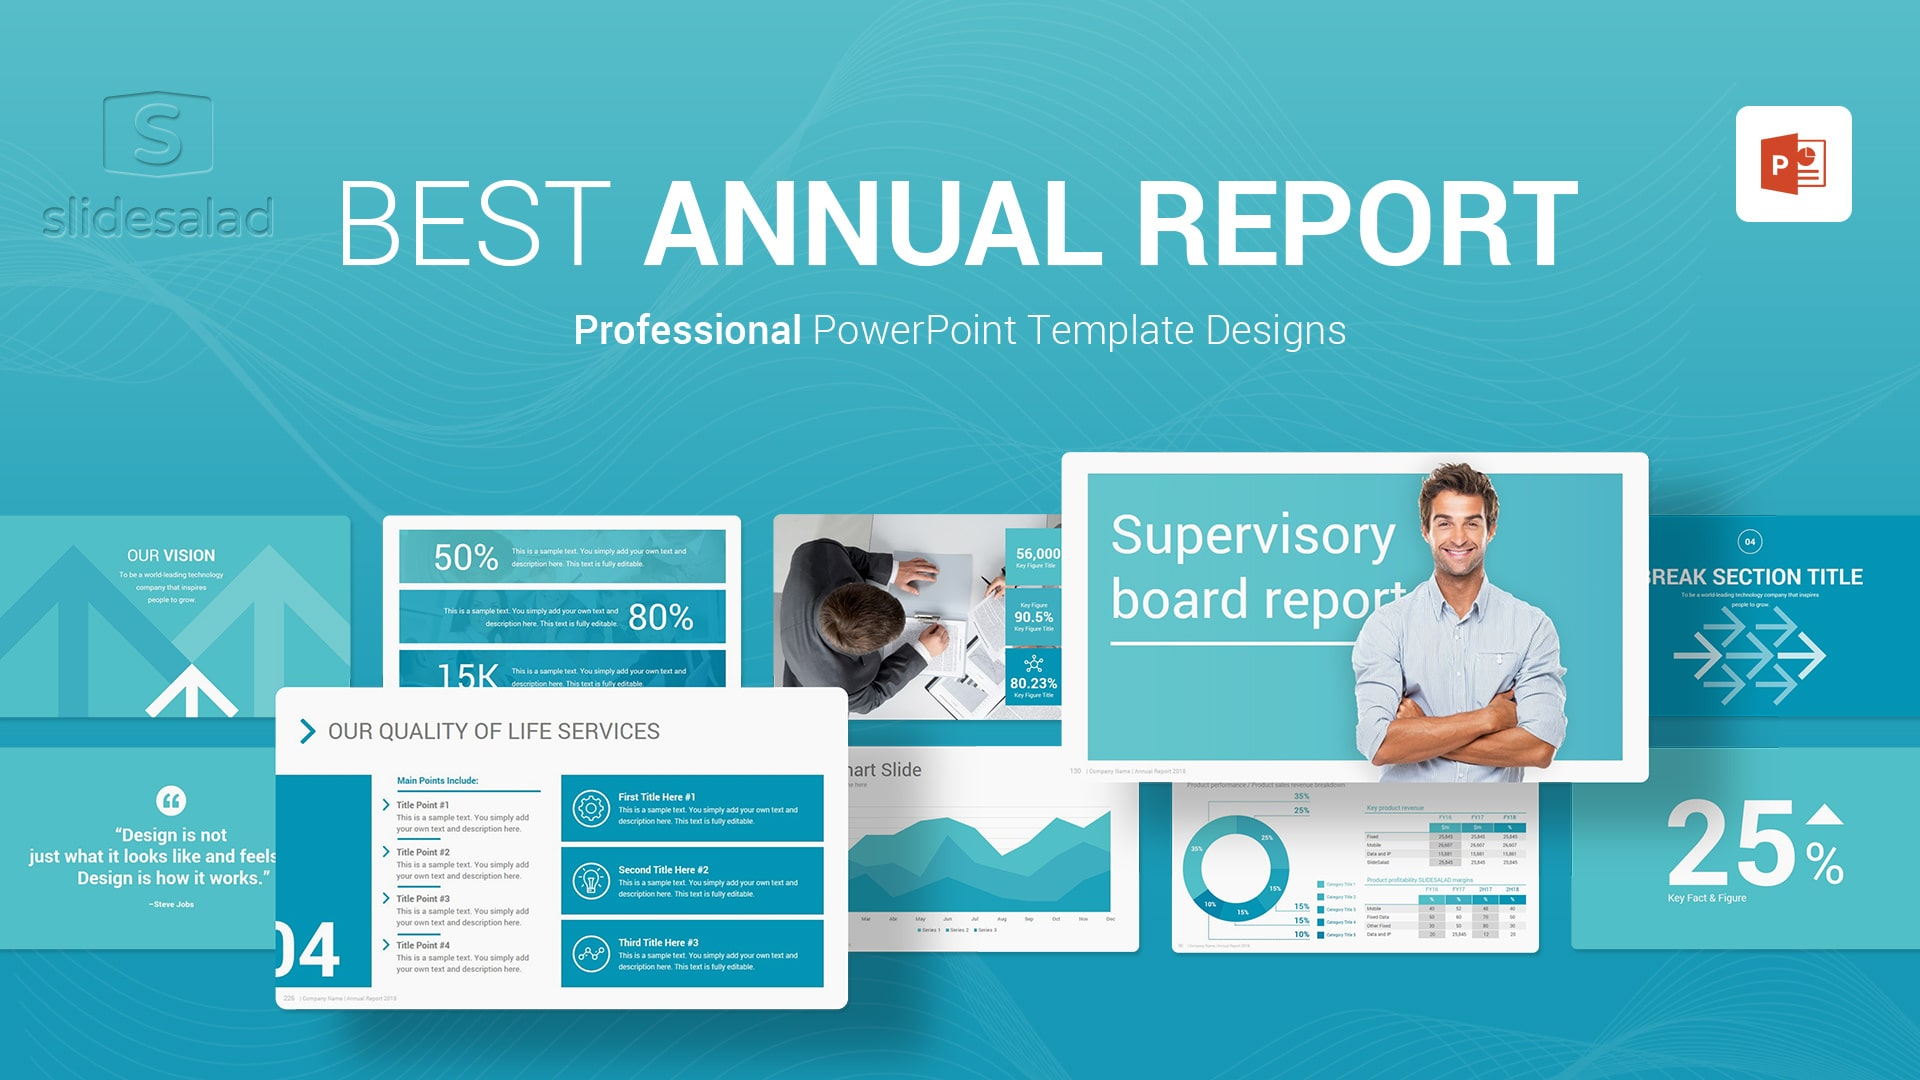 Annual Report PowerPoint Presentation Templates - Complete Yearly Reporting PPT Templates